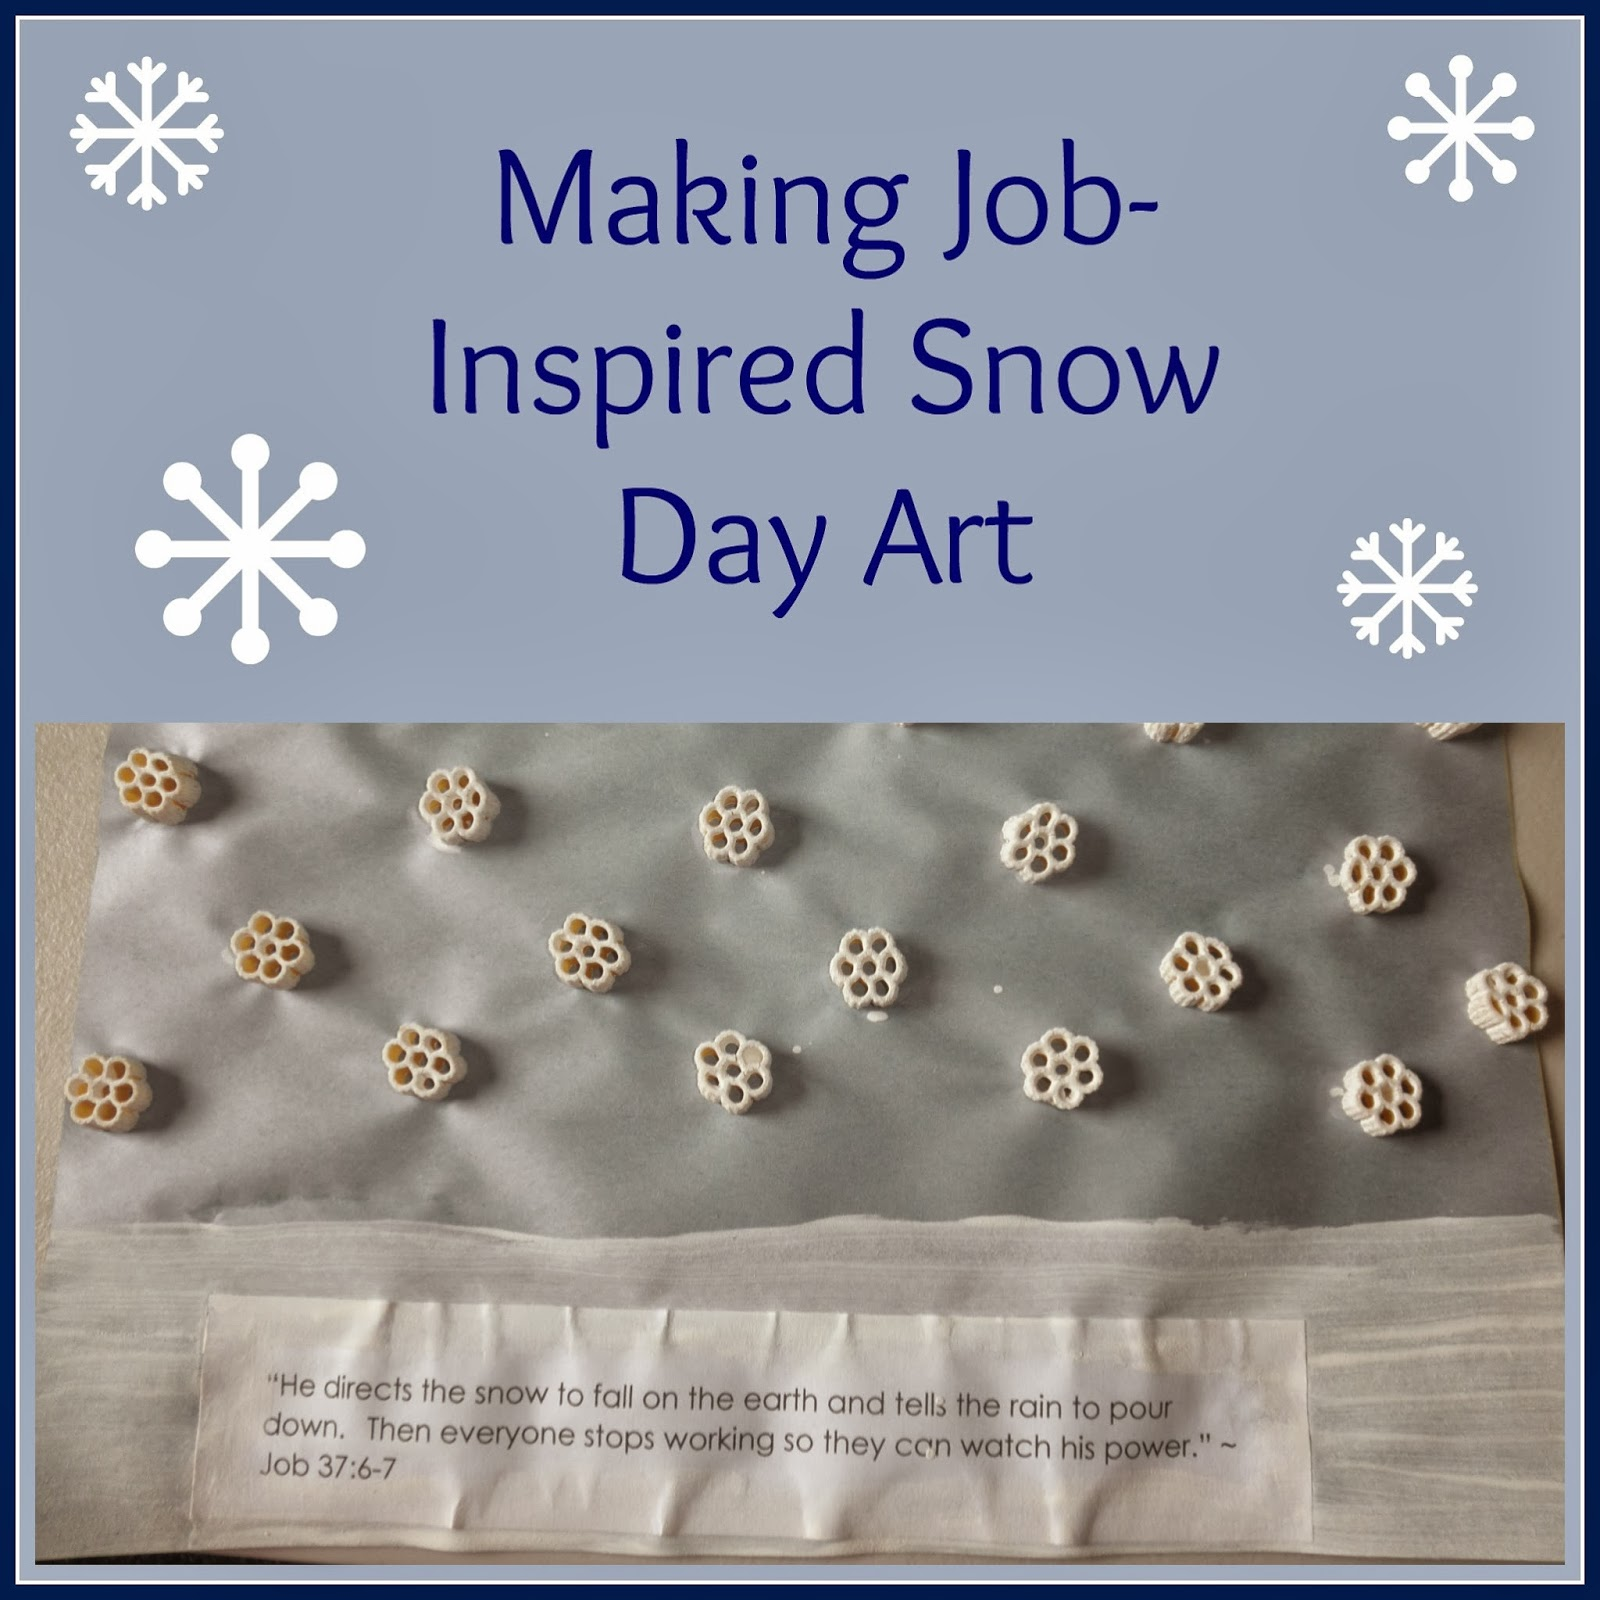 http://anestintherocks.blogspot.com/2014/03/job-inspired-snow-day-art.html